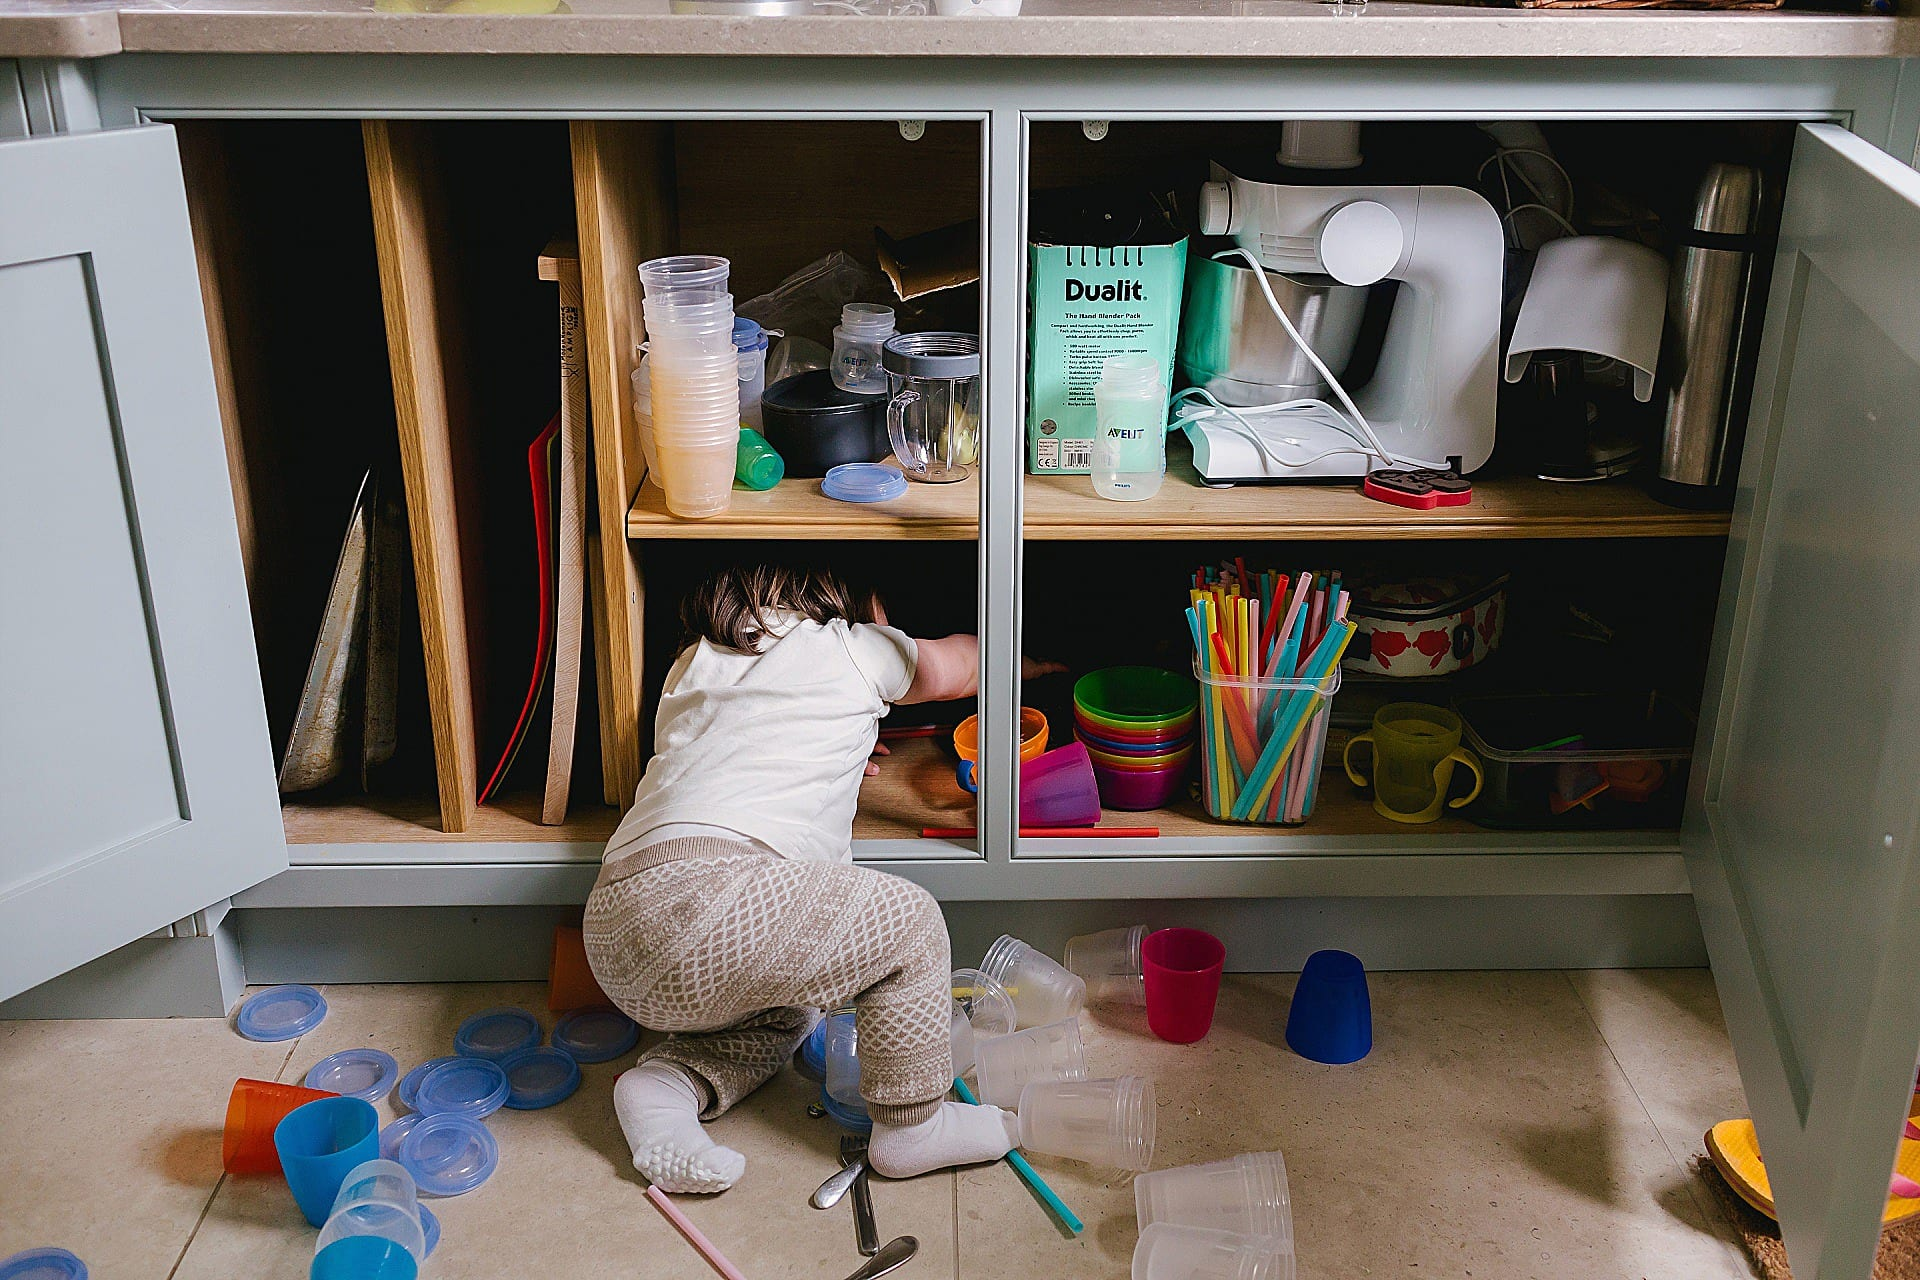 Toddler climbs into cupboard pulling things out